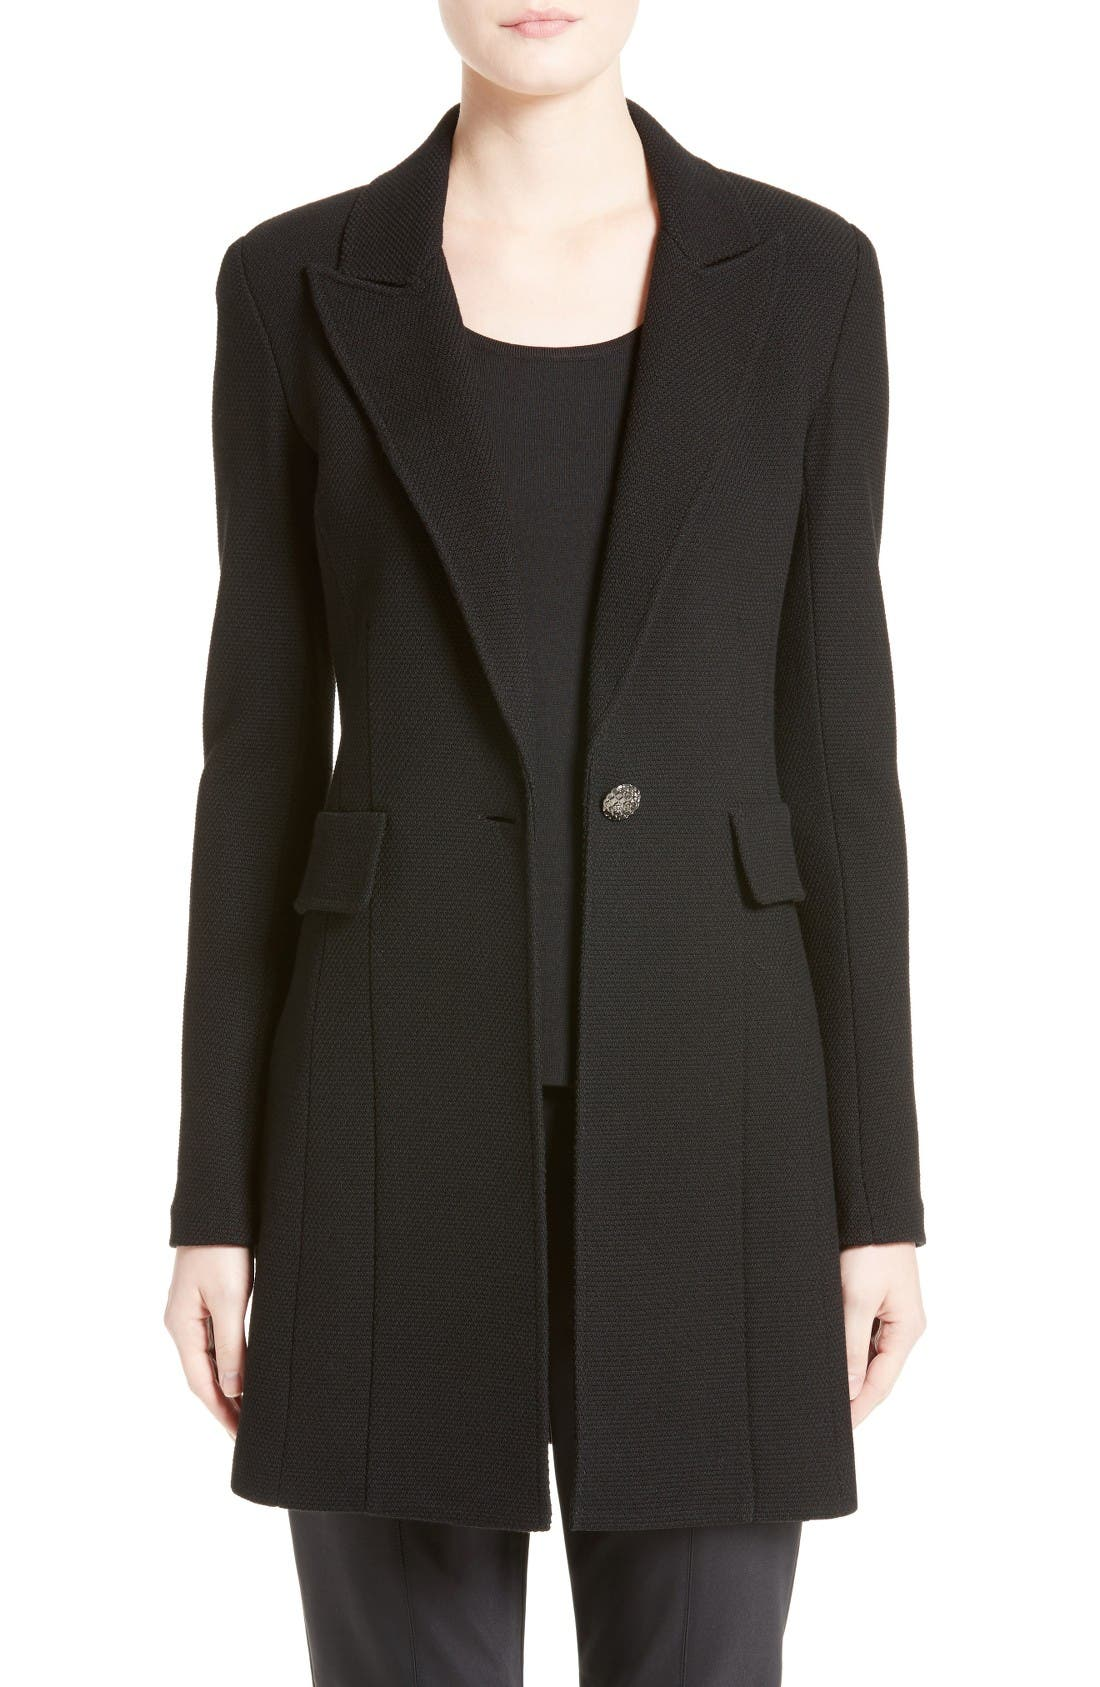 Main Image - St. John Collection Micro Bouclé Knit Blazer